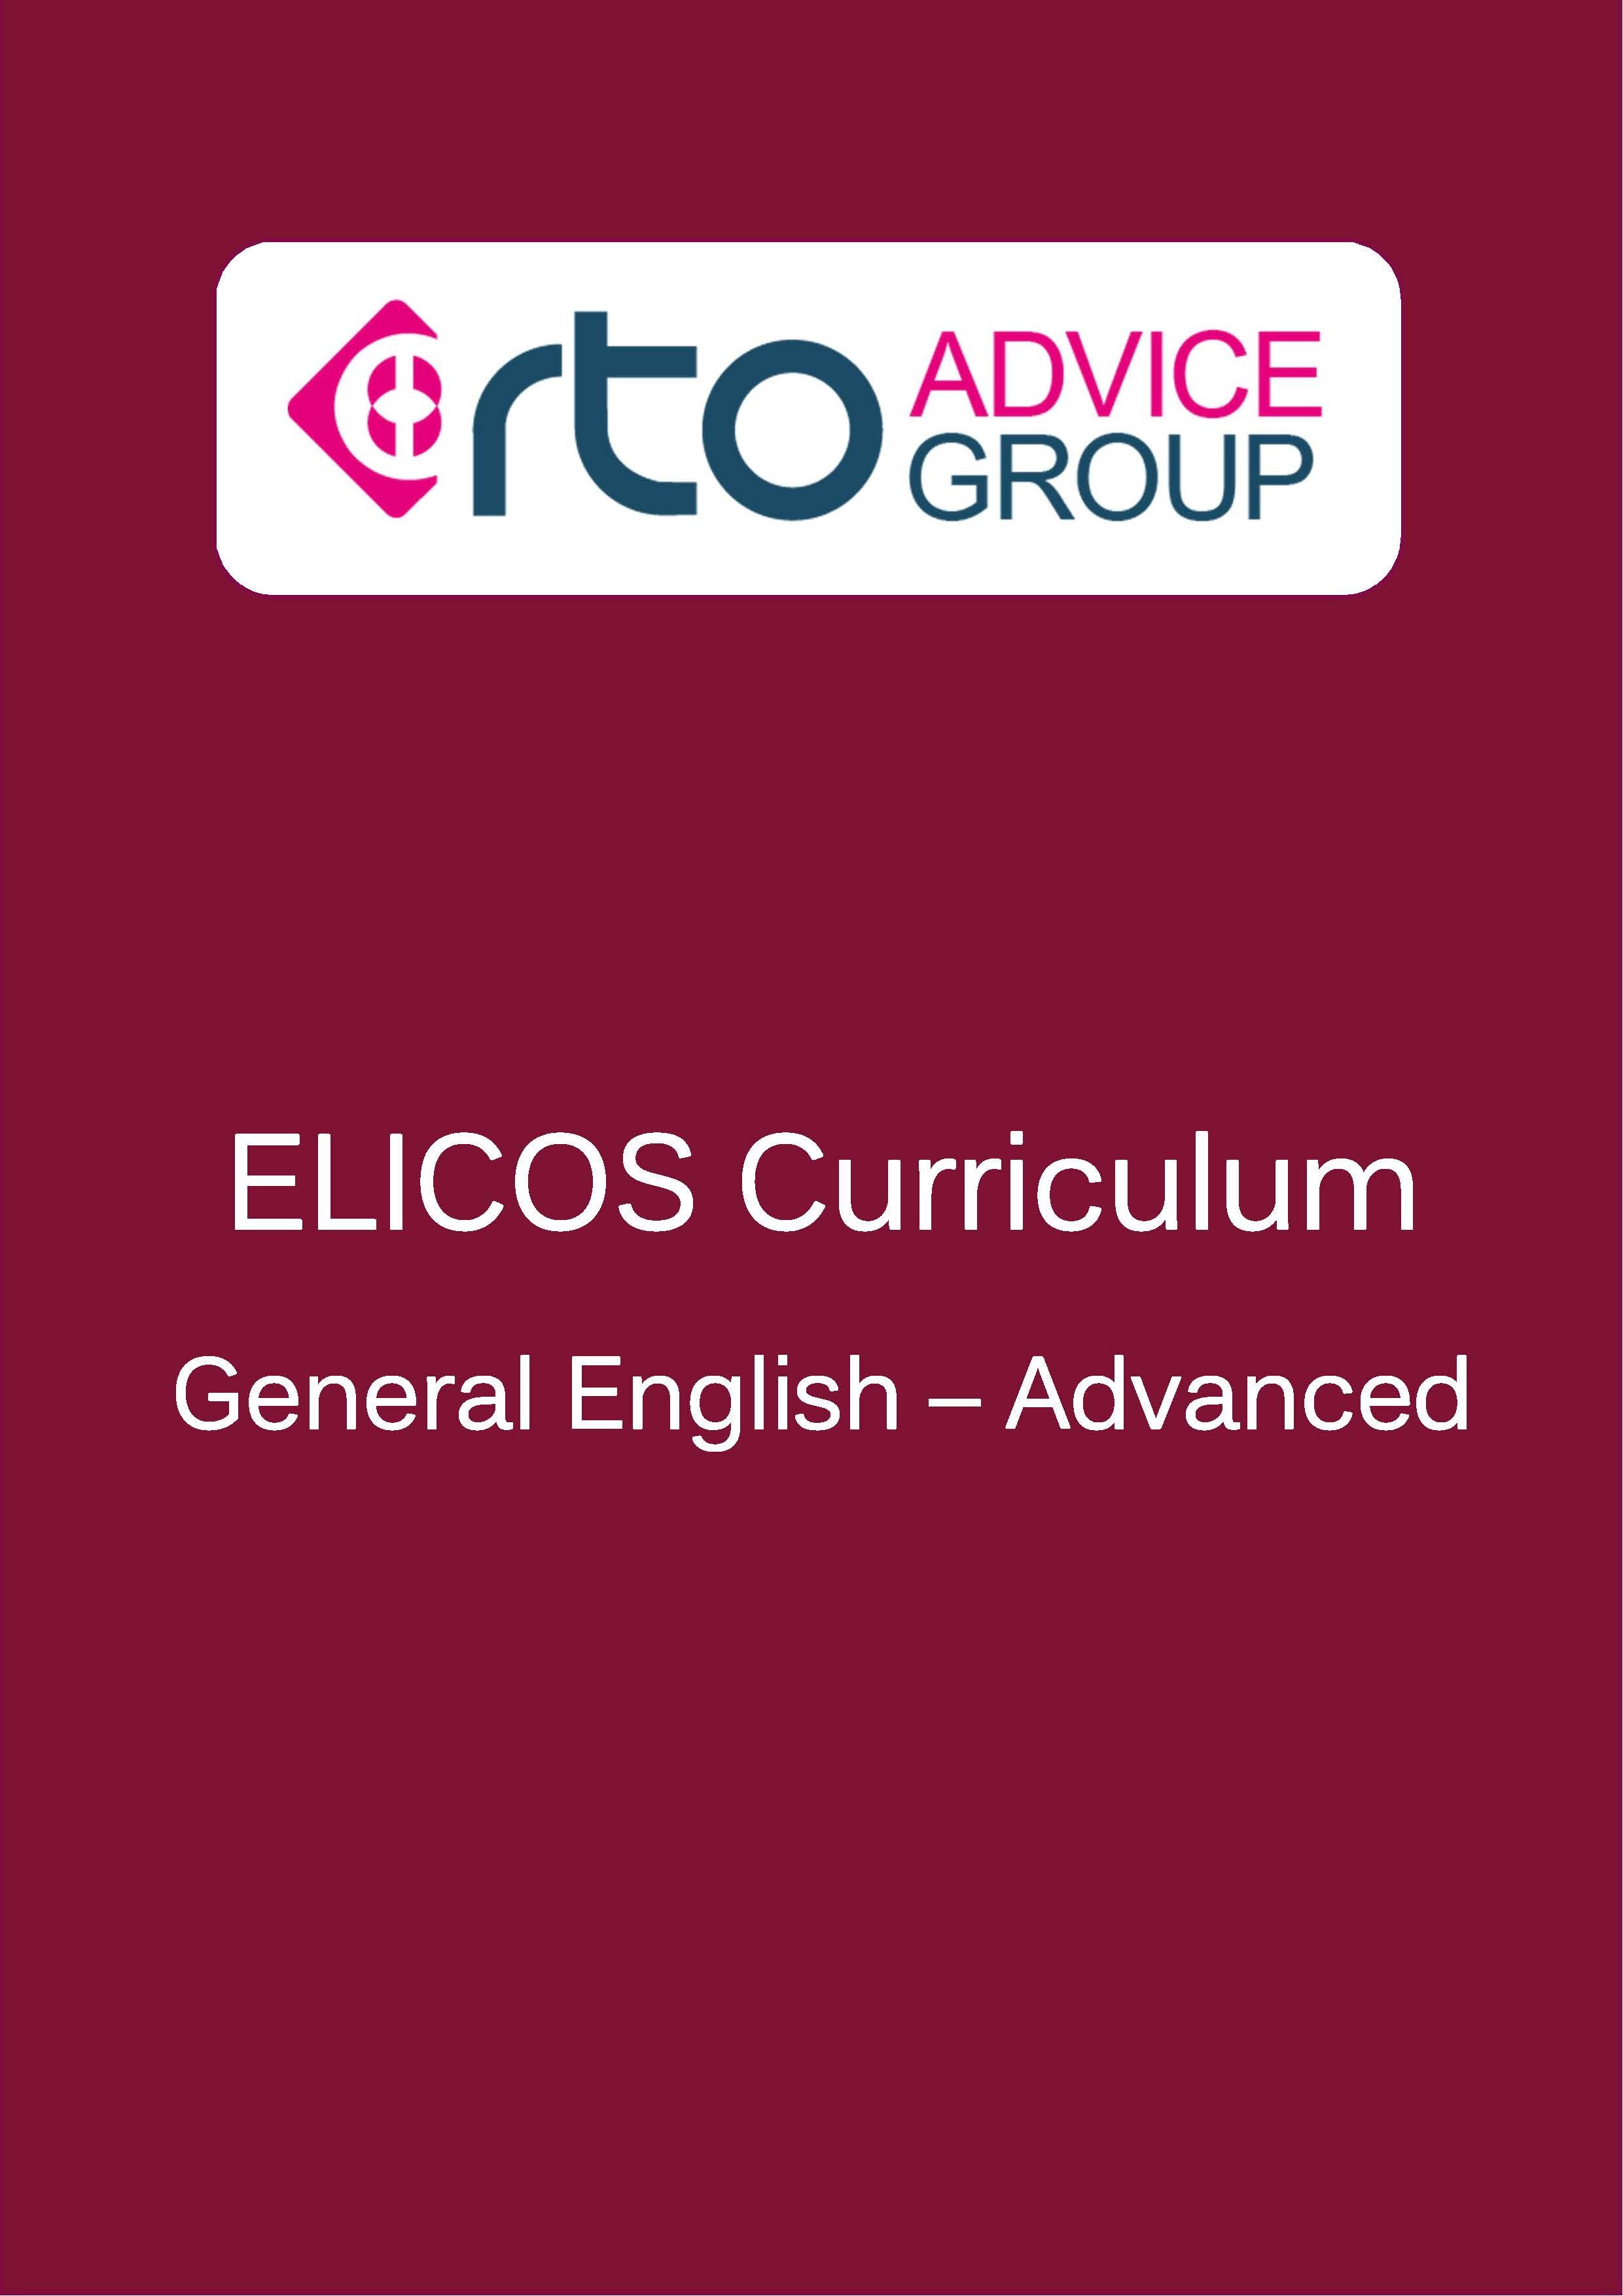 ELICOS Curriculum – General English Advanced